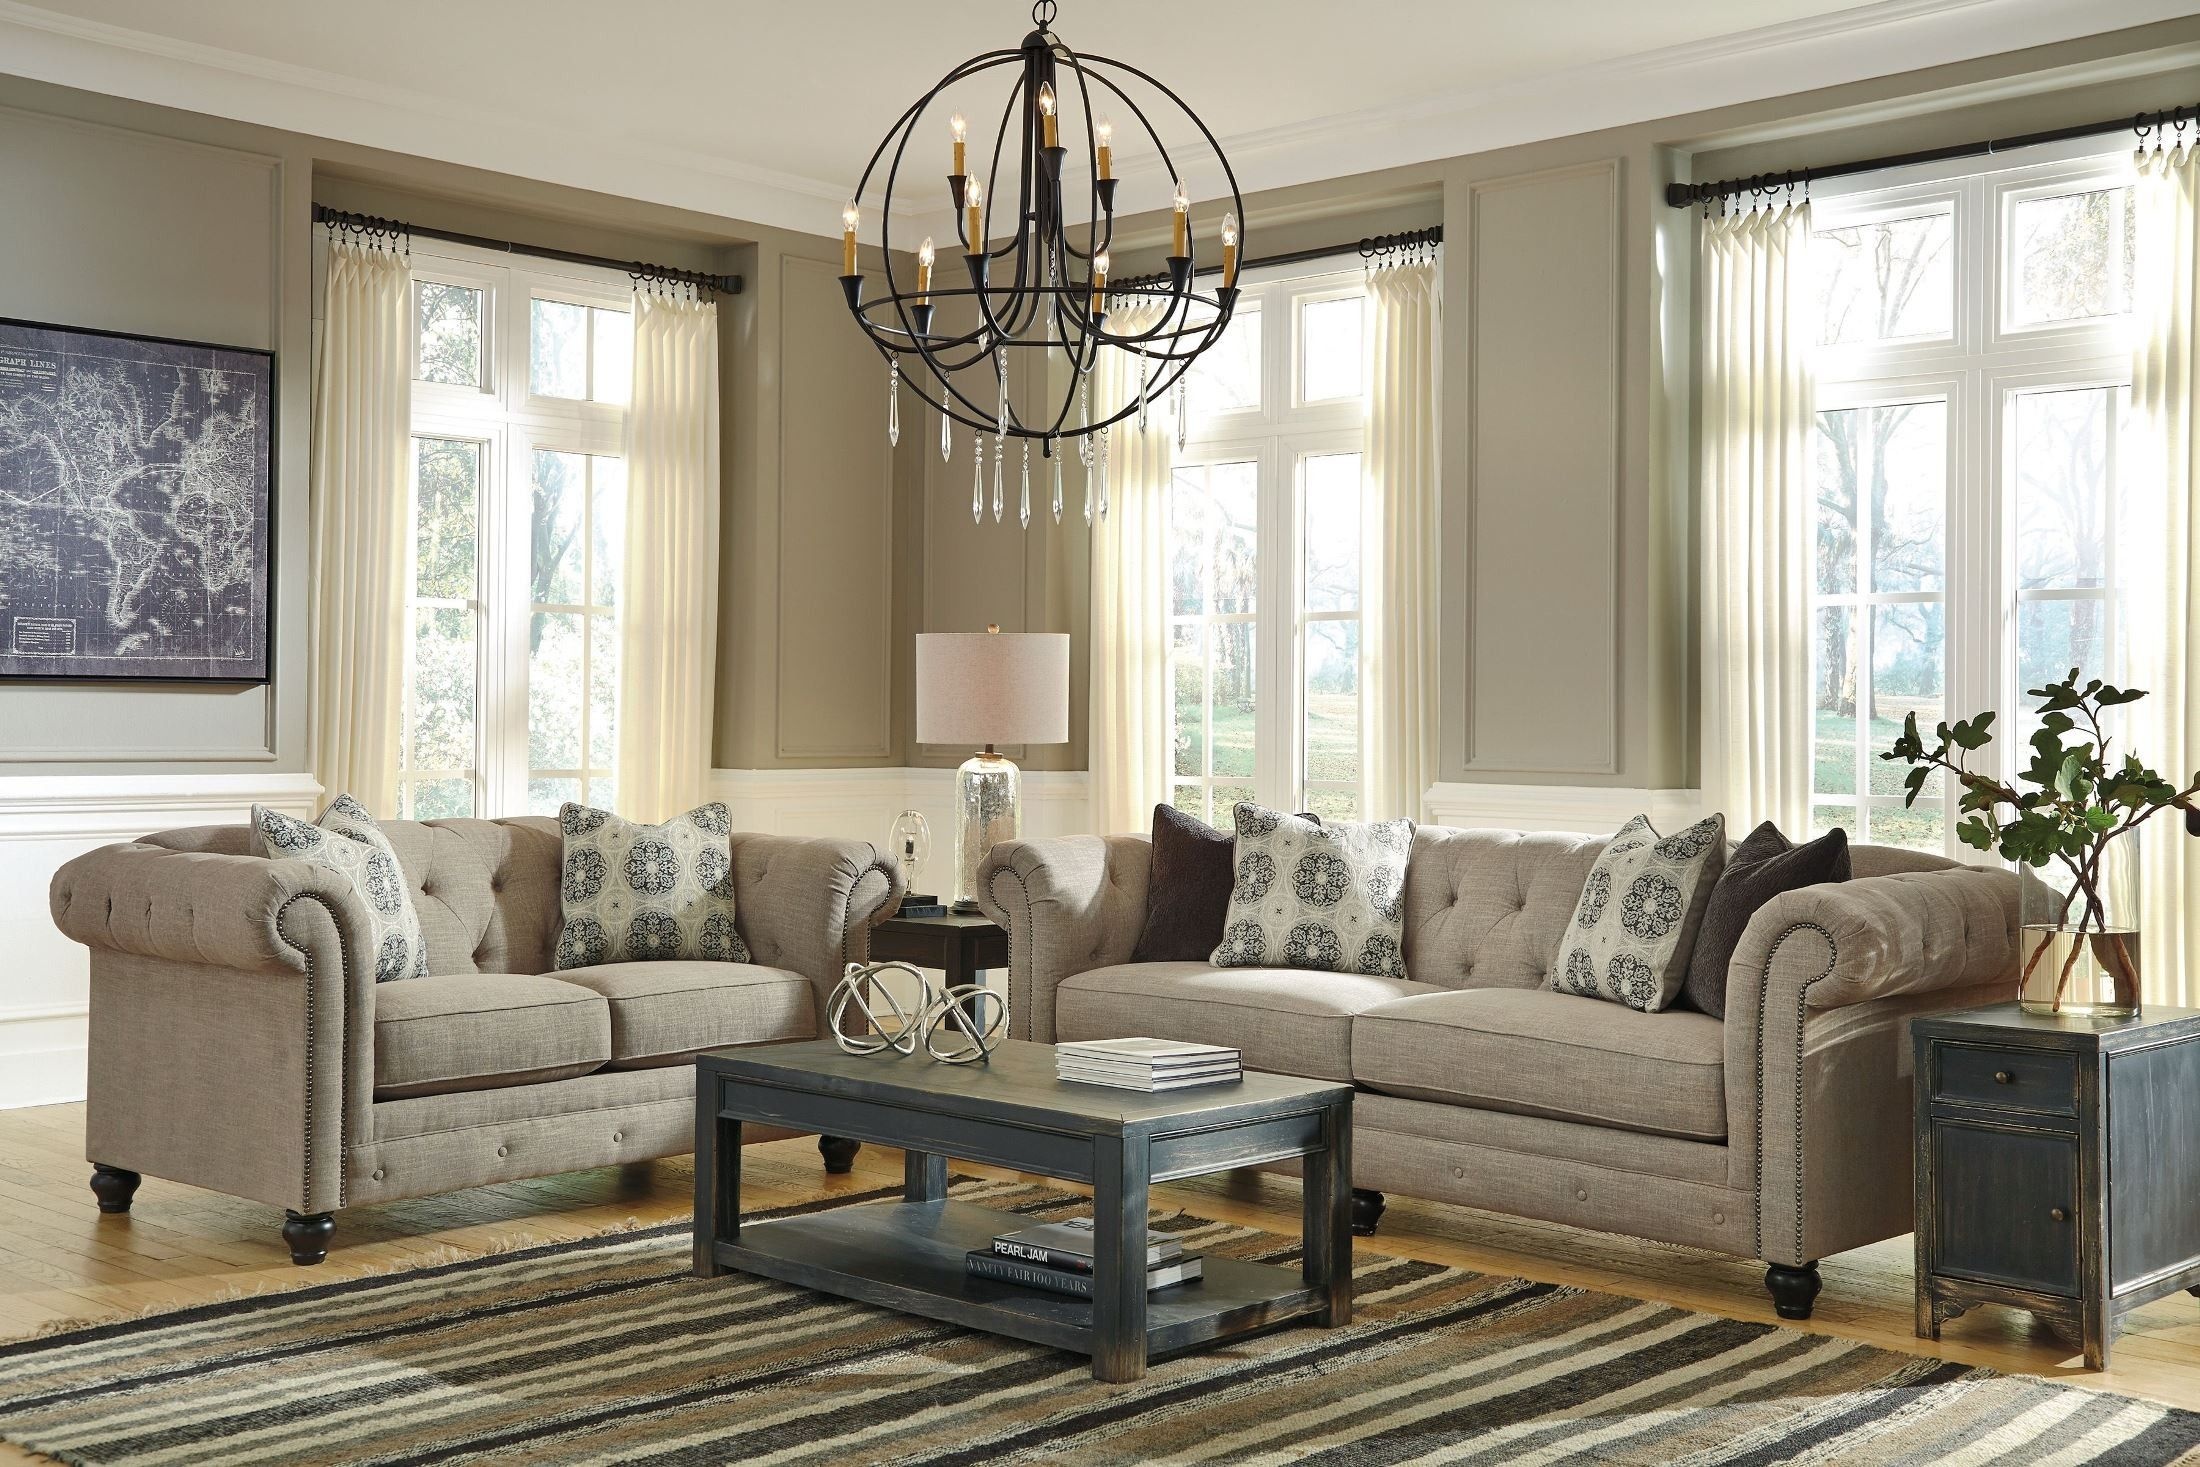 Sofa Express Pineville Nc Living Room Sofa Azlyn Loveseat By Ashley Furniture At Kensington